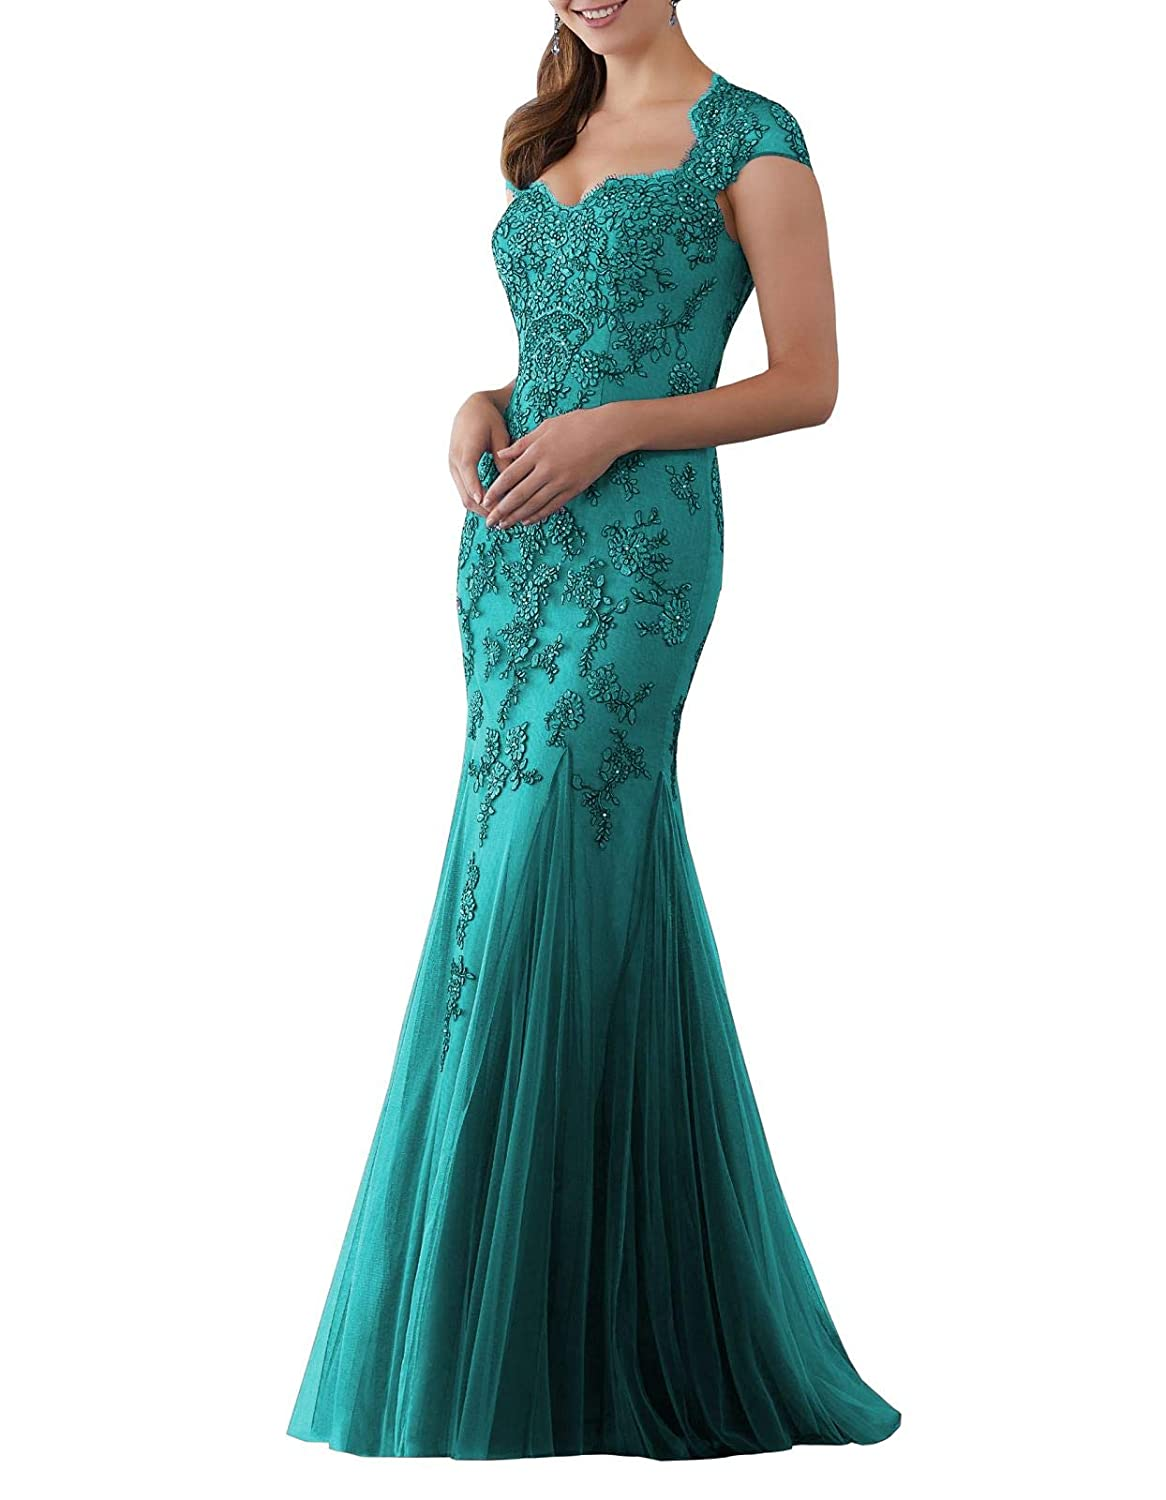 Green Aishanglina Caps Shoulder Embroidered Appliques Beaded Evening Gown Floor Length Party Tulle Dress